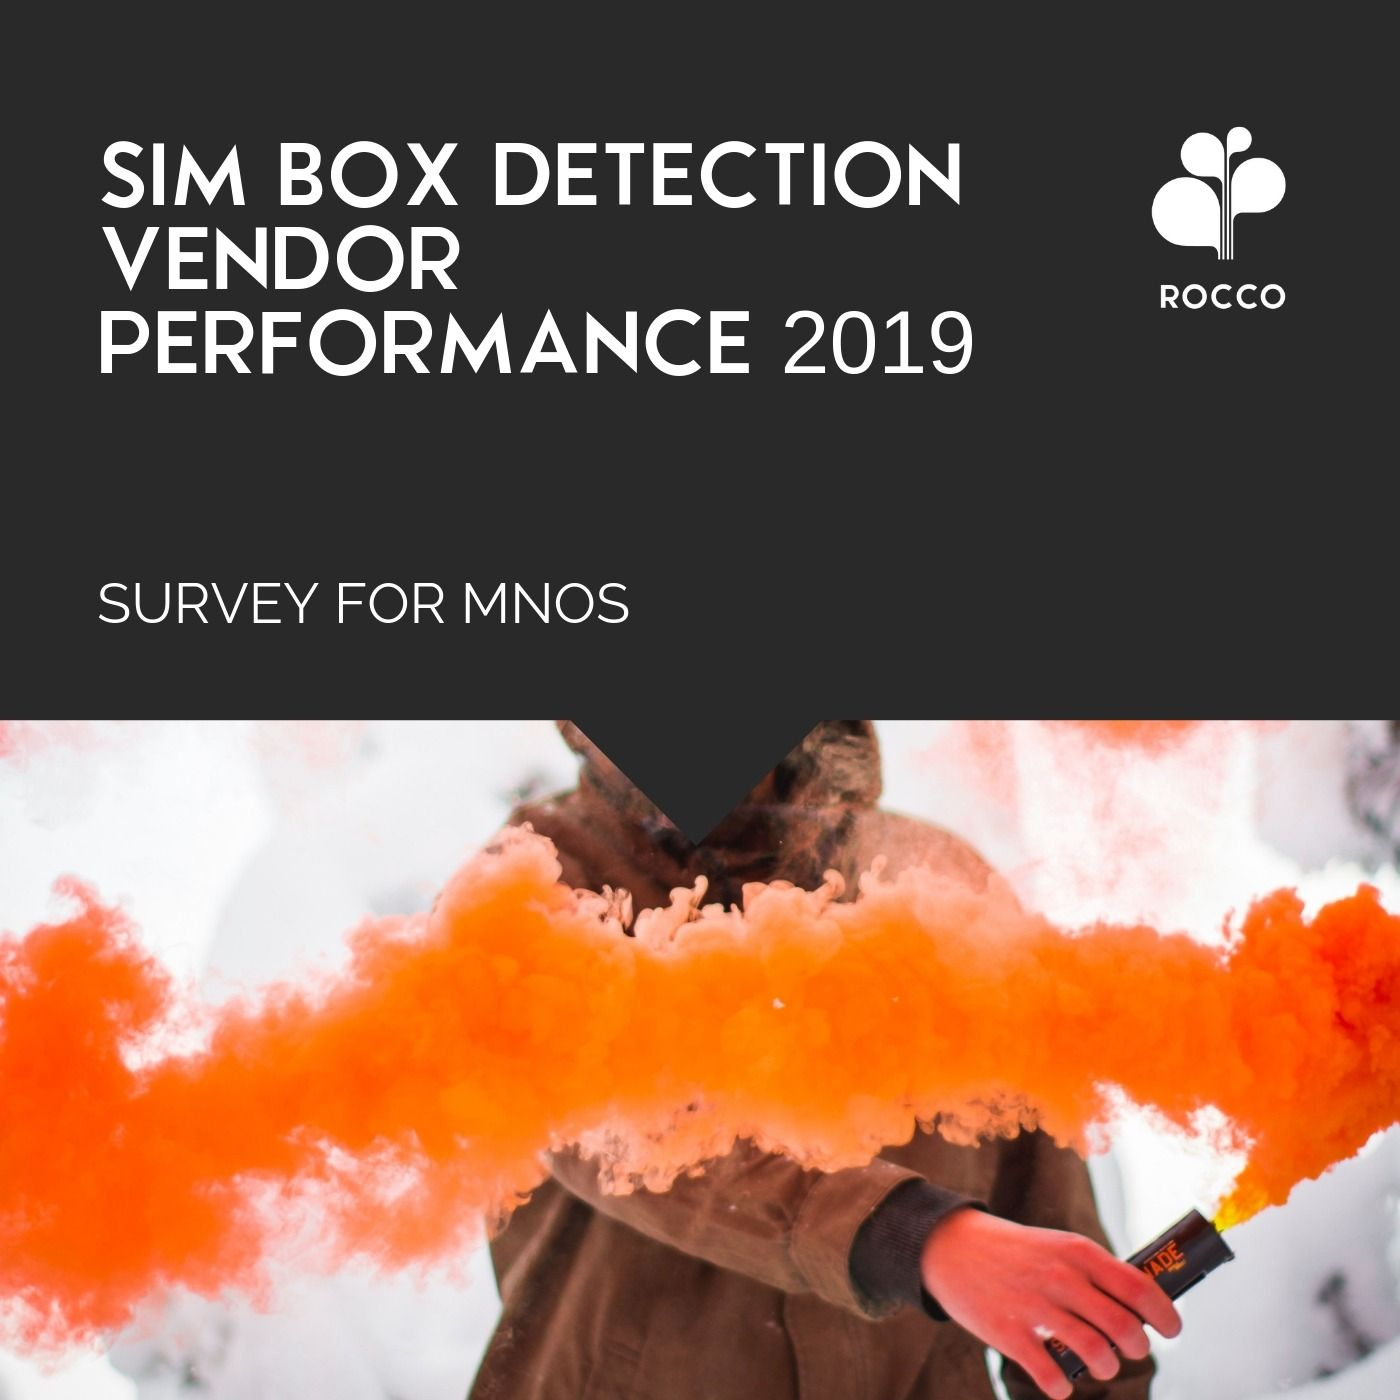 LAUNCH: SIM BOX Detection Vendor Performance 2019